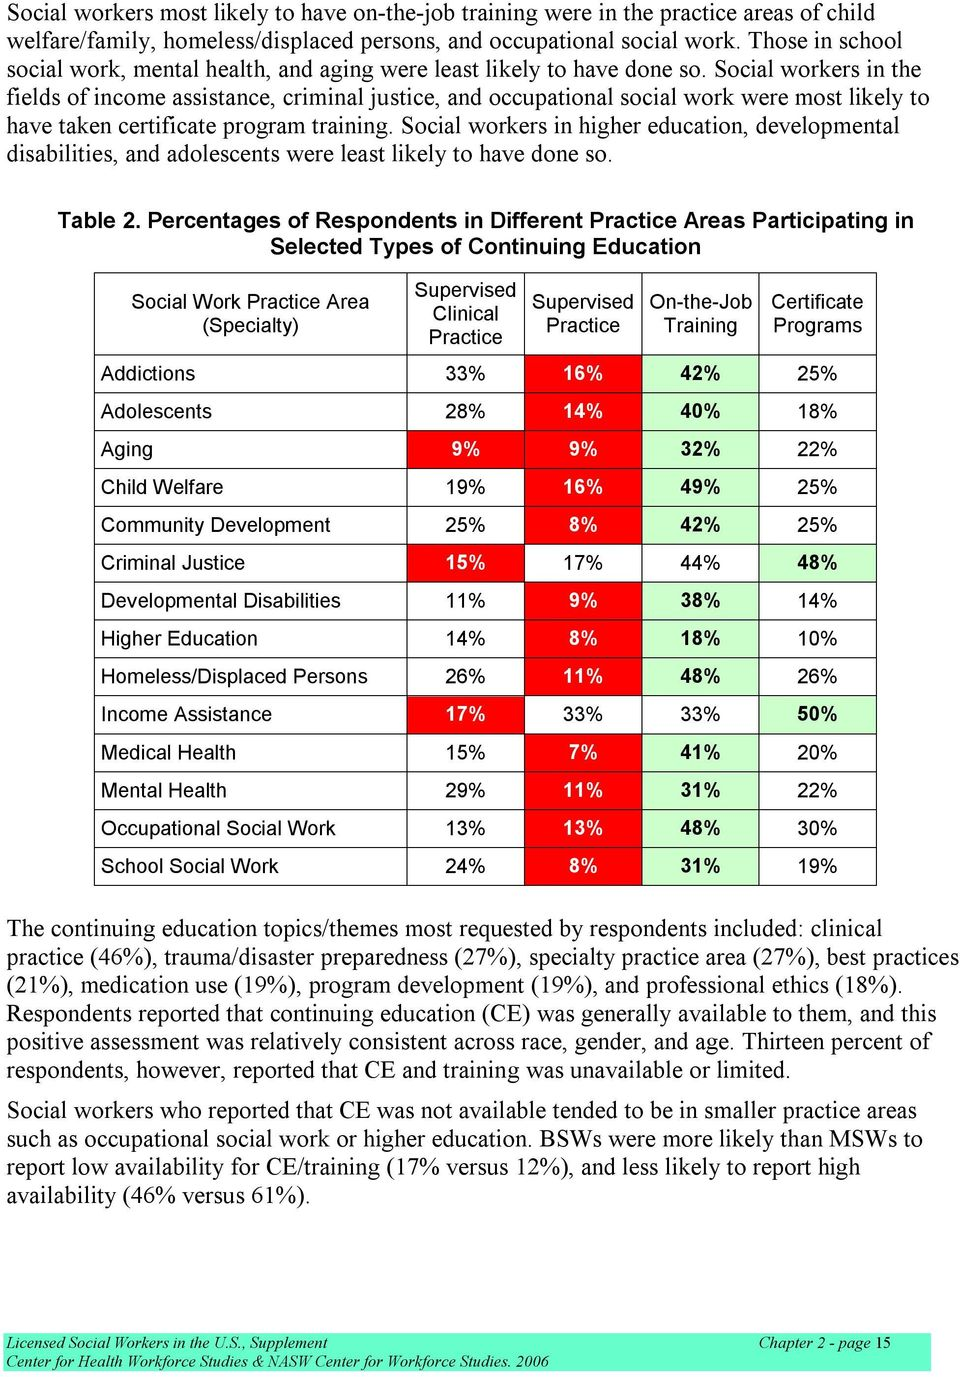 Social workers in the fields of income assistance, criminal justice, and occupational social work were most likely to have taken certificate program training.